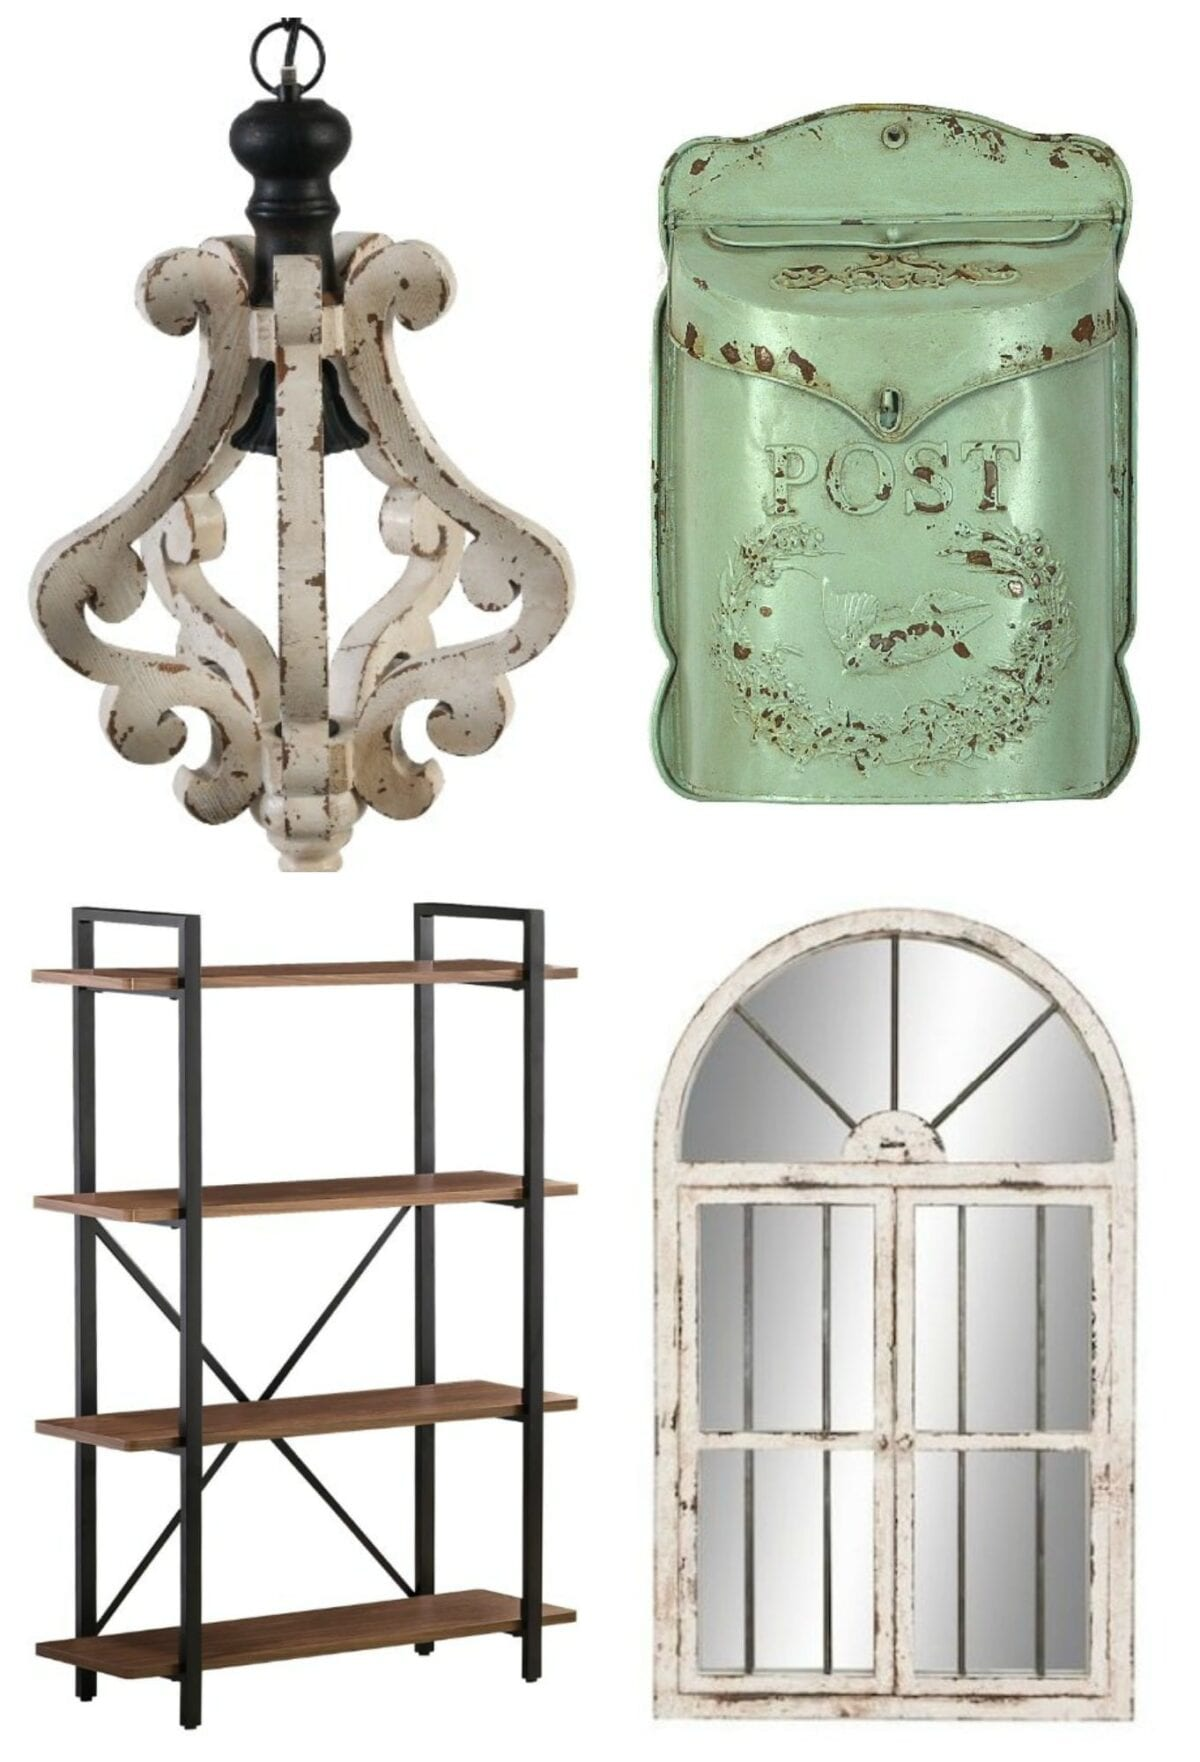 Antique Farmhouse Wall Sconces : Where to Buy Affordable Industrial Farmhouse Decor - Bless'er House